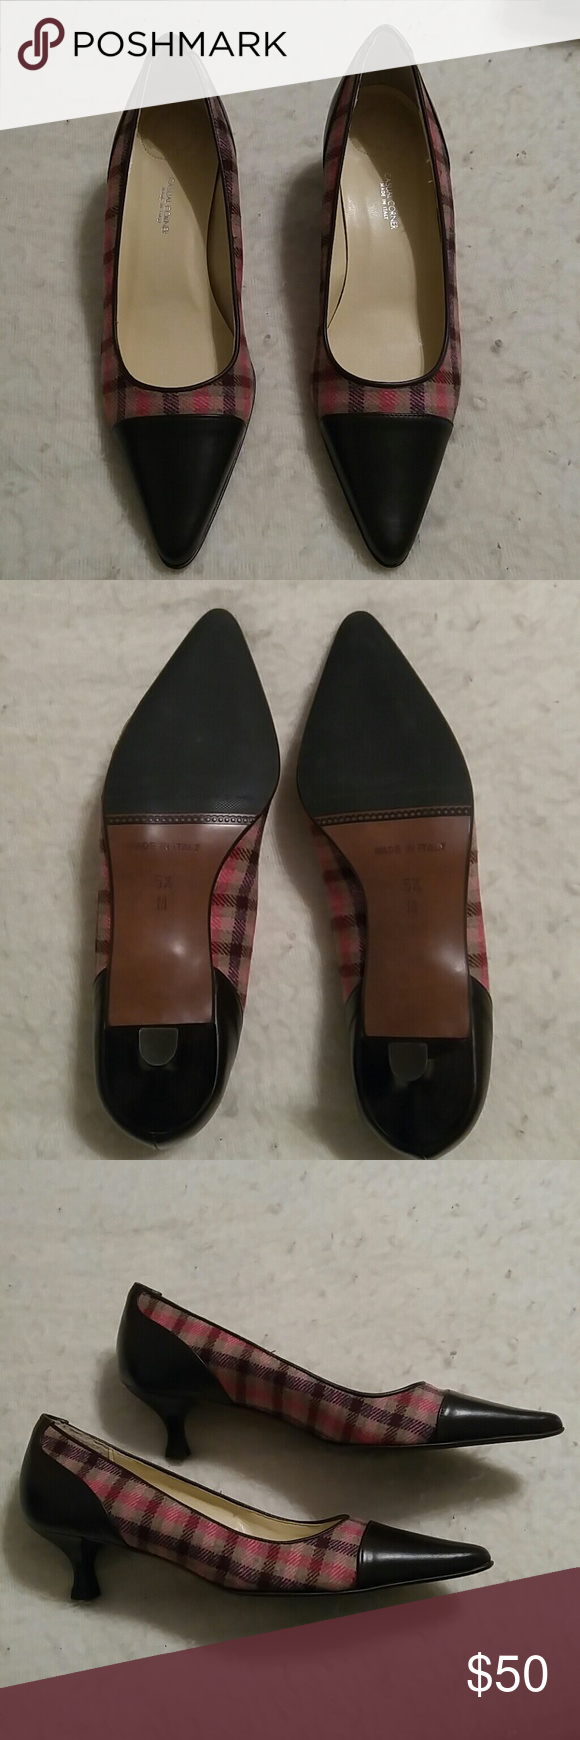 Made in Italy Casual Corner Vanna shoes